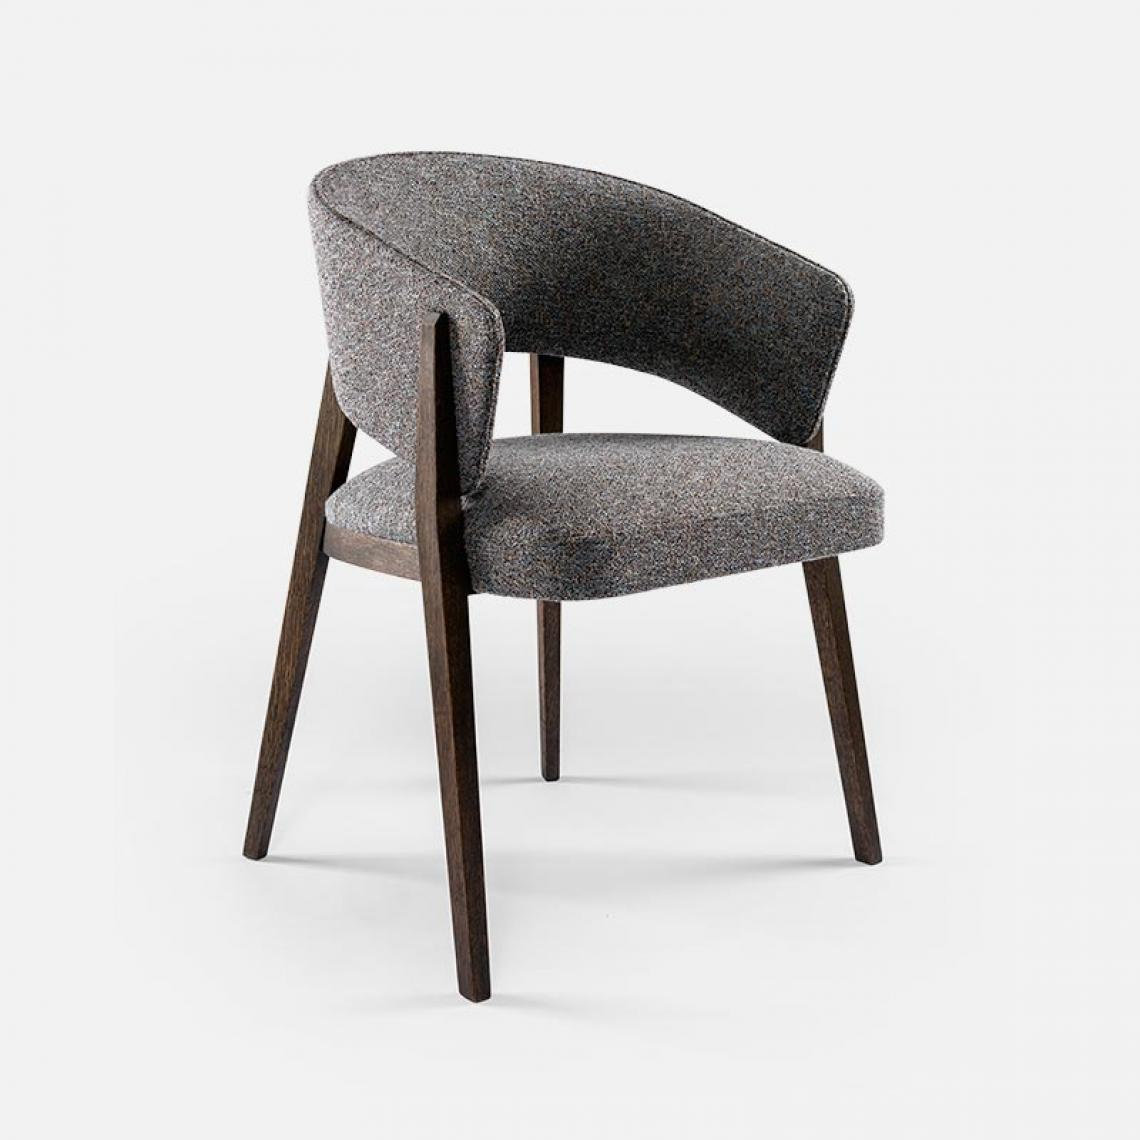 106-79 - Wrap Dining Chair